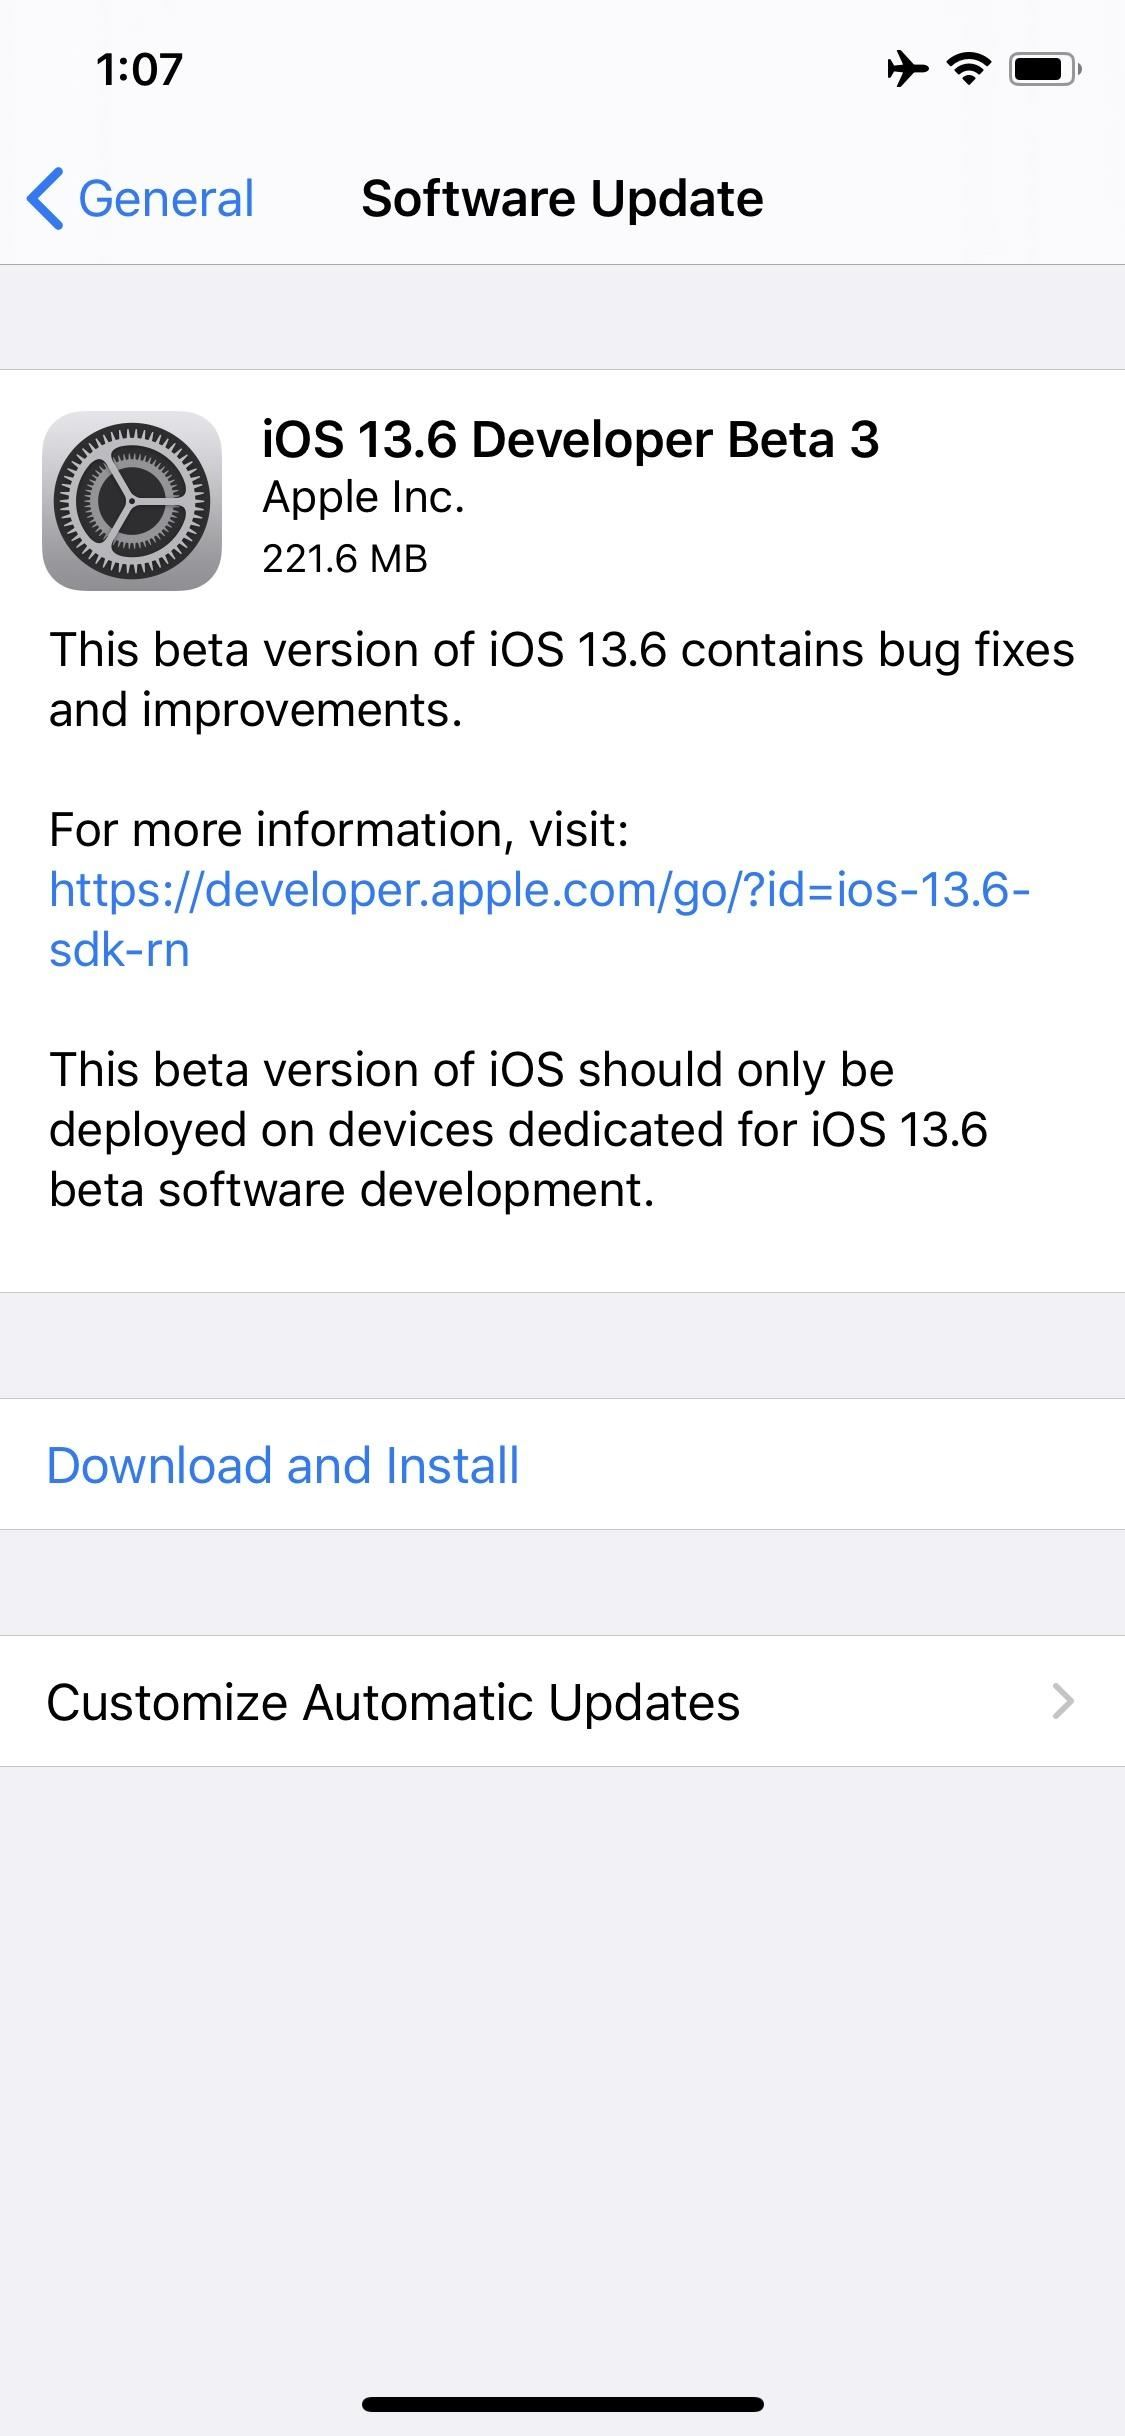 Apple's iOS 13.6 Developer Beta 3 Offers a Minor Update for iPhones